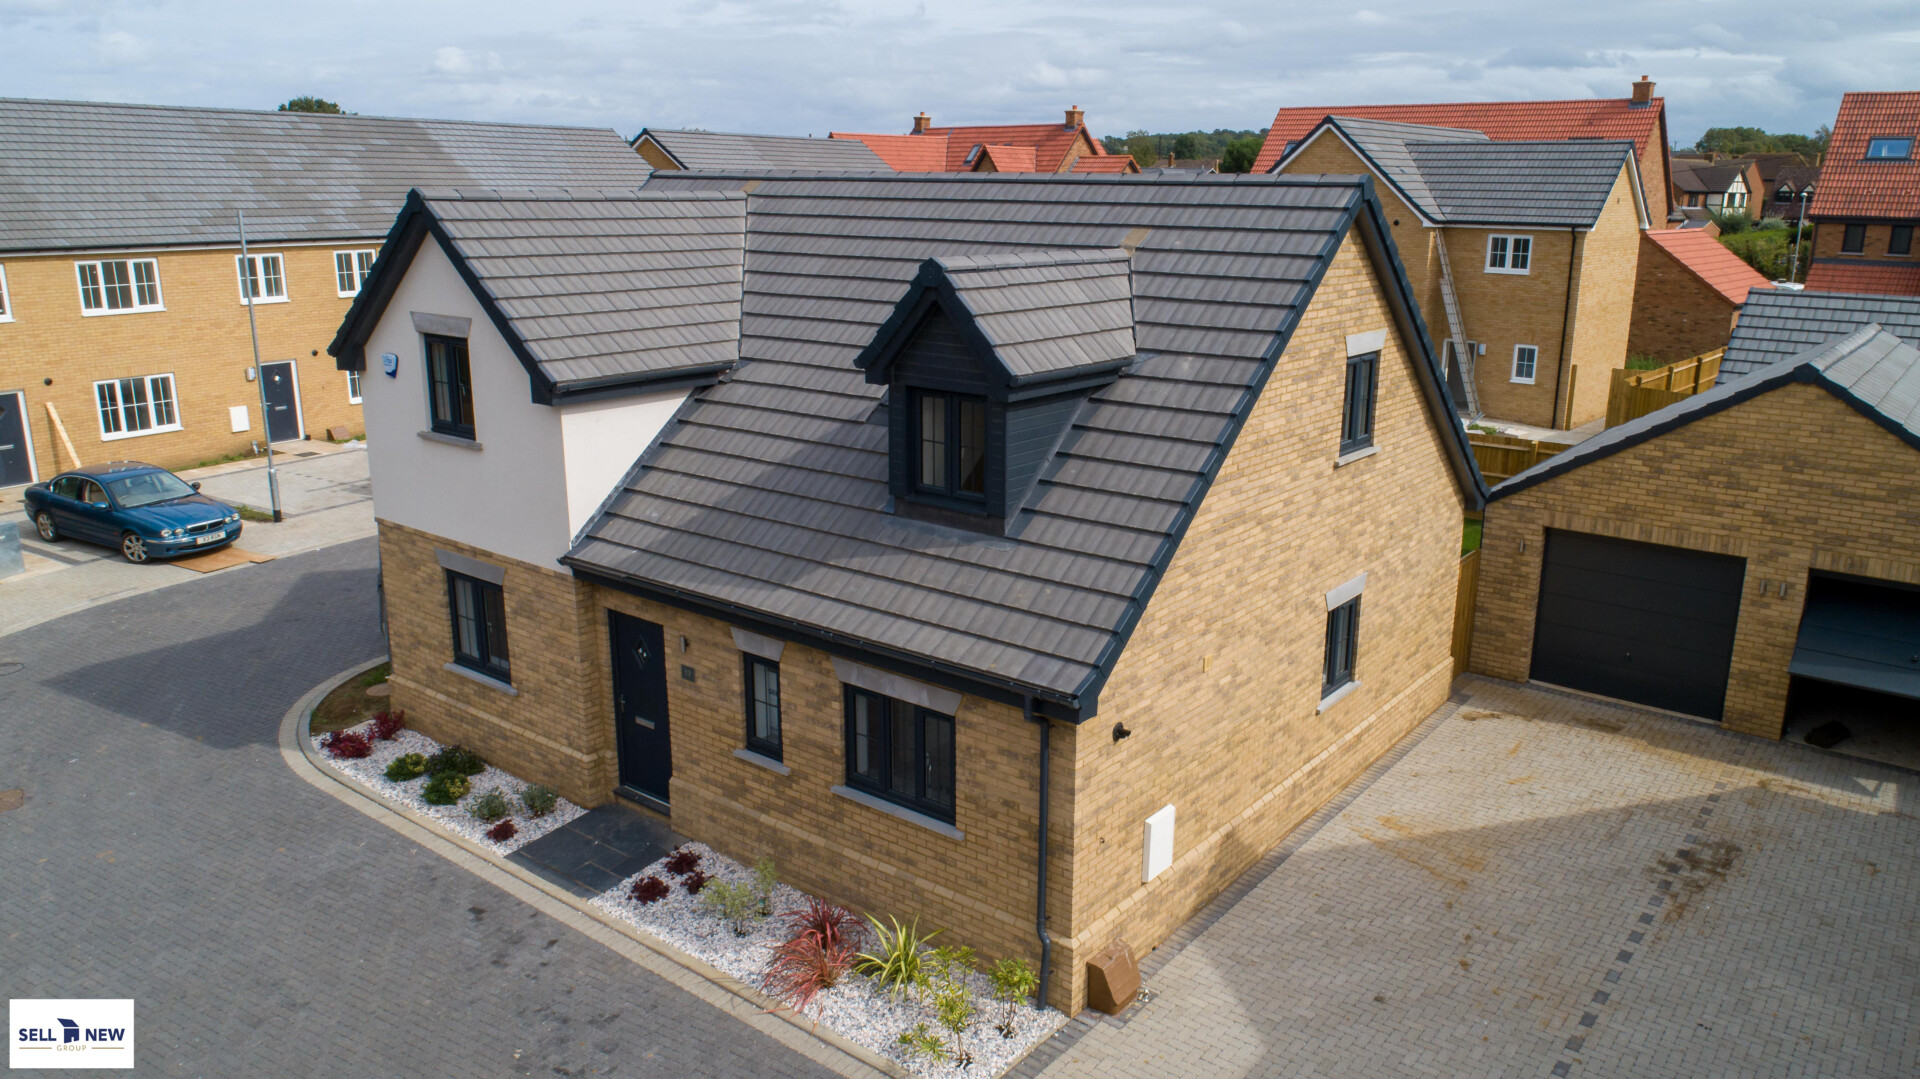 (Plot 22) 17 Hayfield, Flitton – Last 3/4 bedroom detached family home for sale